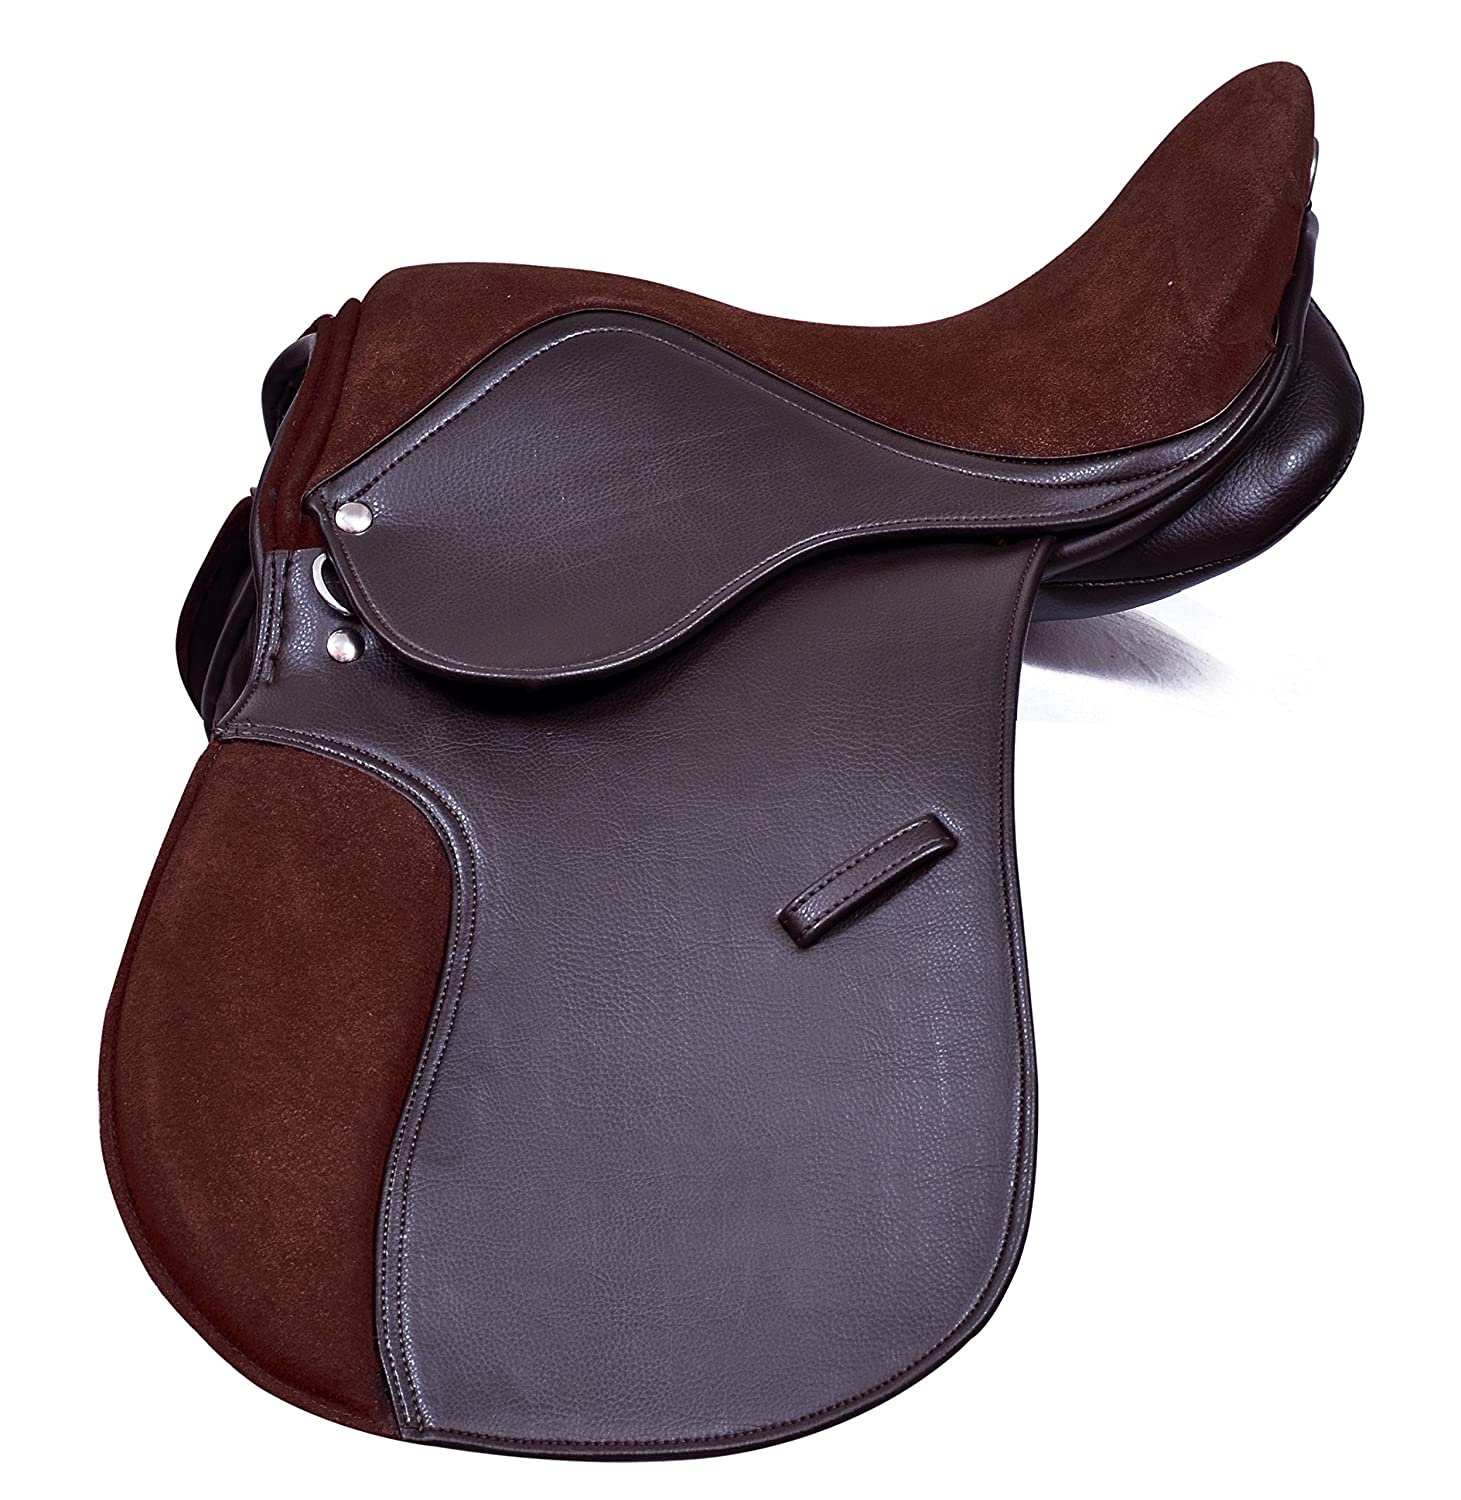 Pets2Care Synthetic General Purpose Saddle With Suede Seat Premium Quaility Wide Fit, black and brown 14, 15, 16, 17 & 18